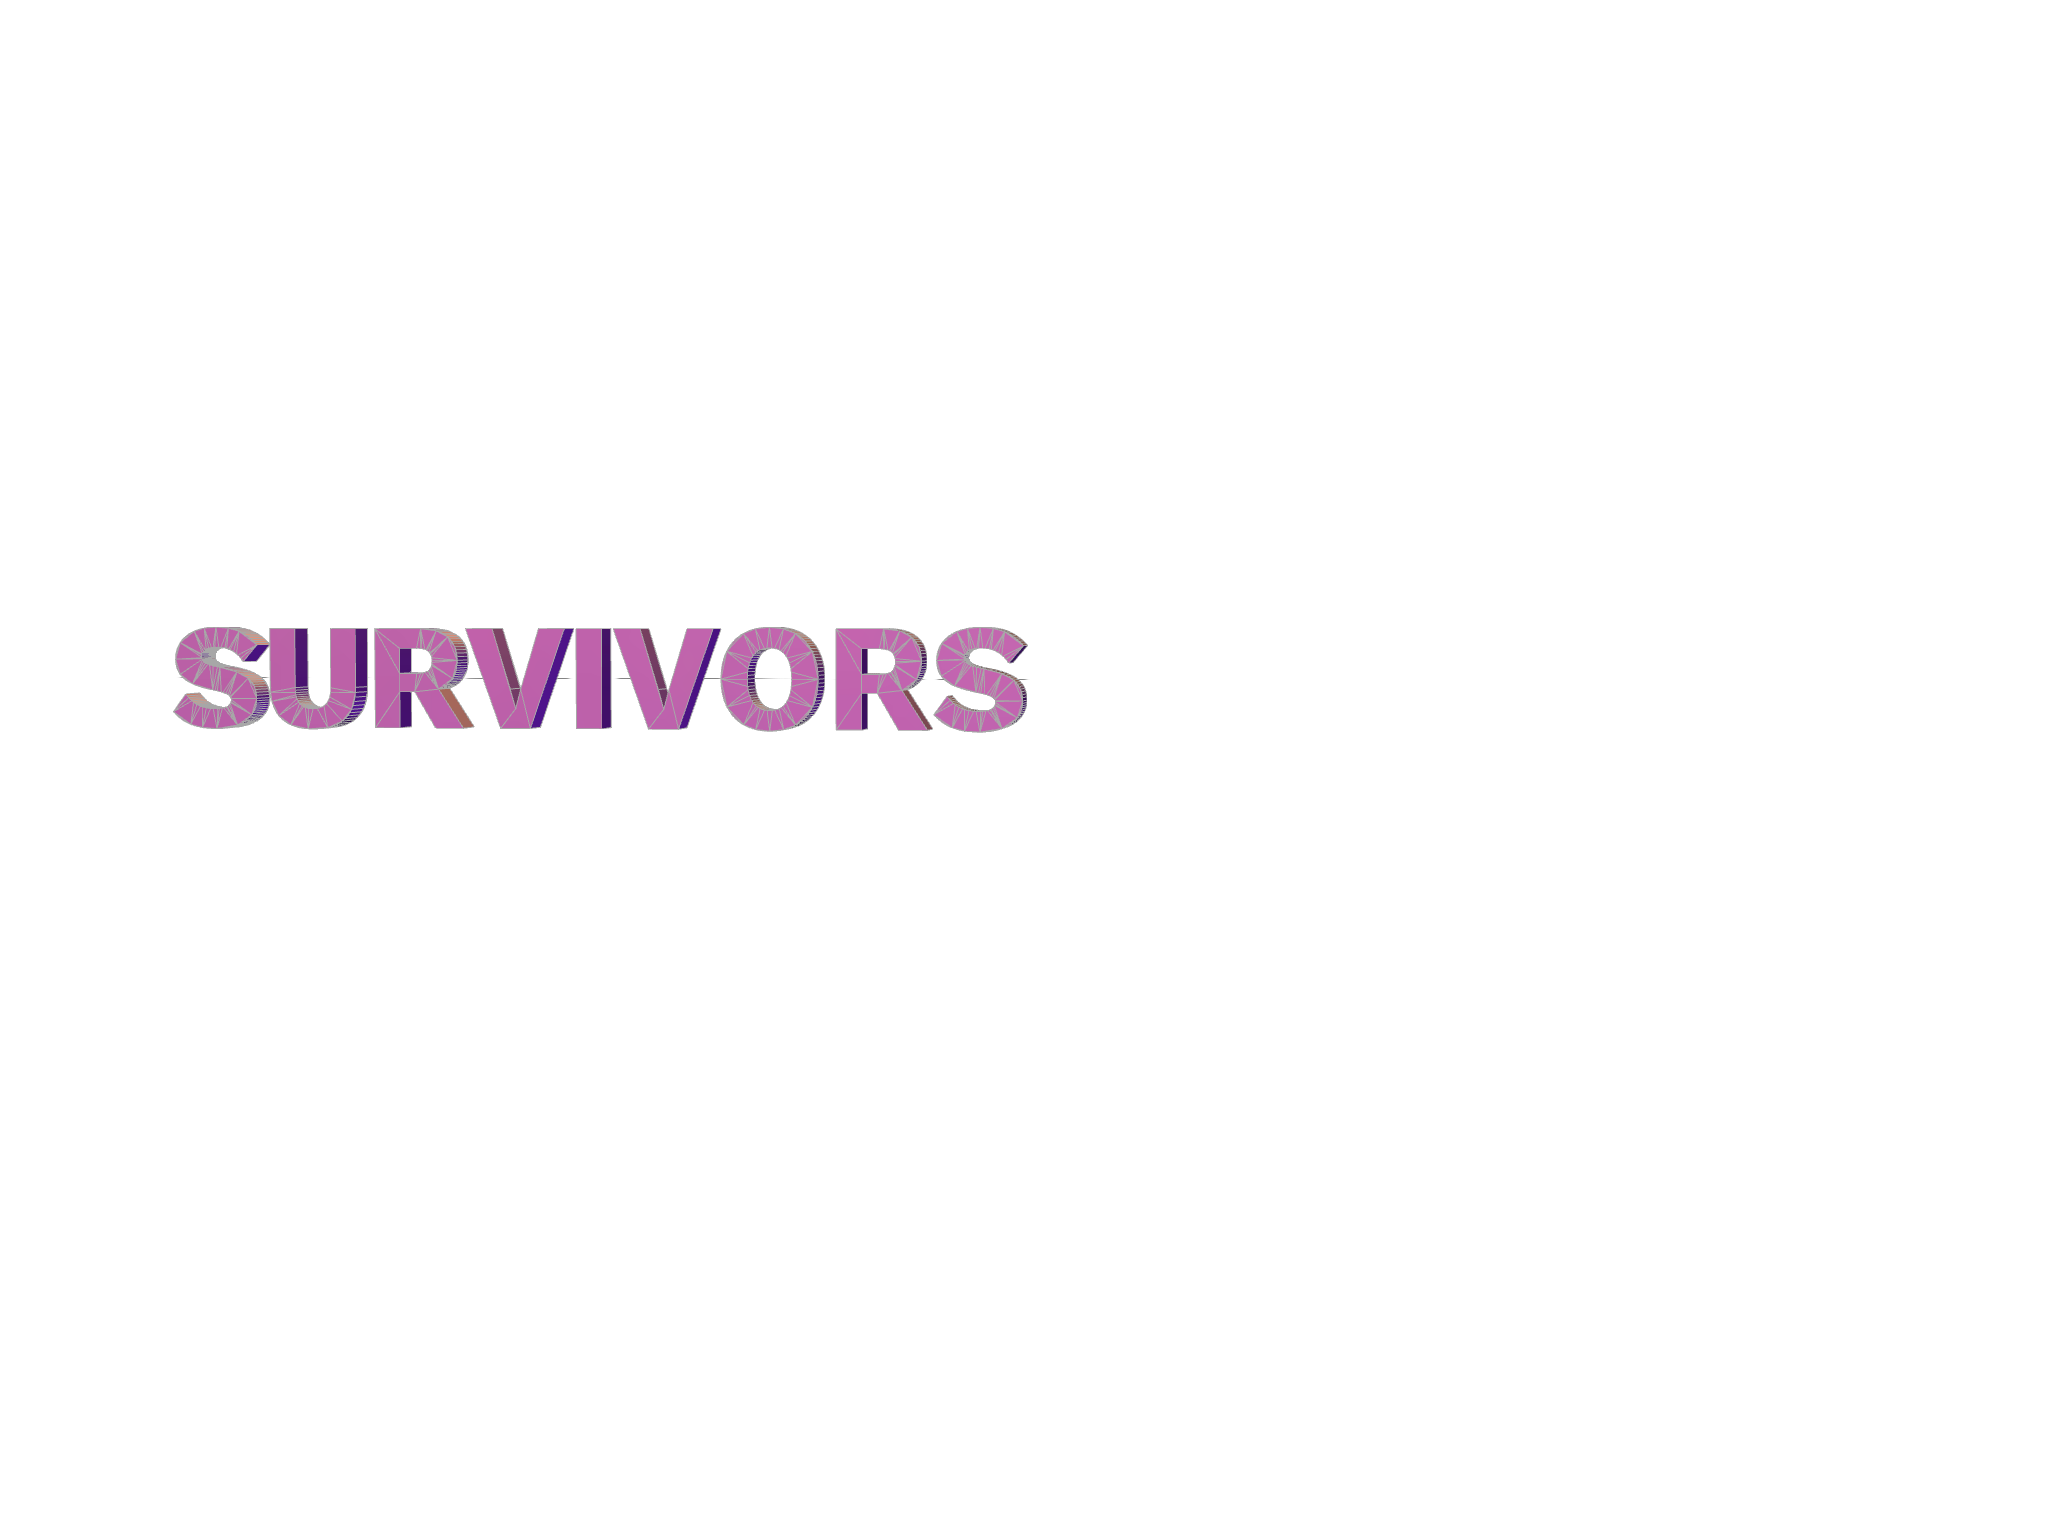 SURVIVORS - 3D design by Stephanie Salcedo May 9, 2018